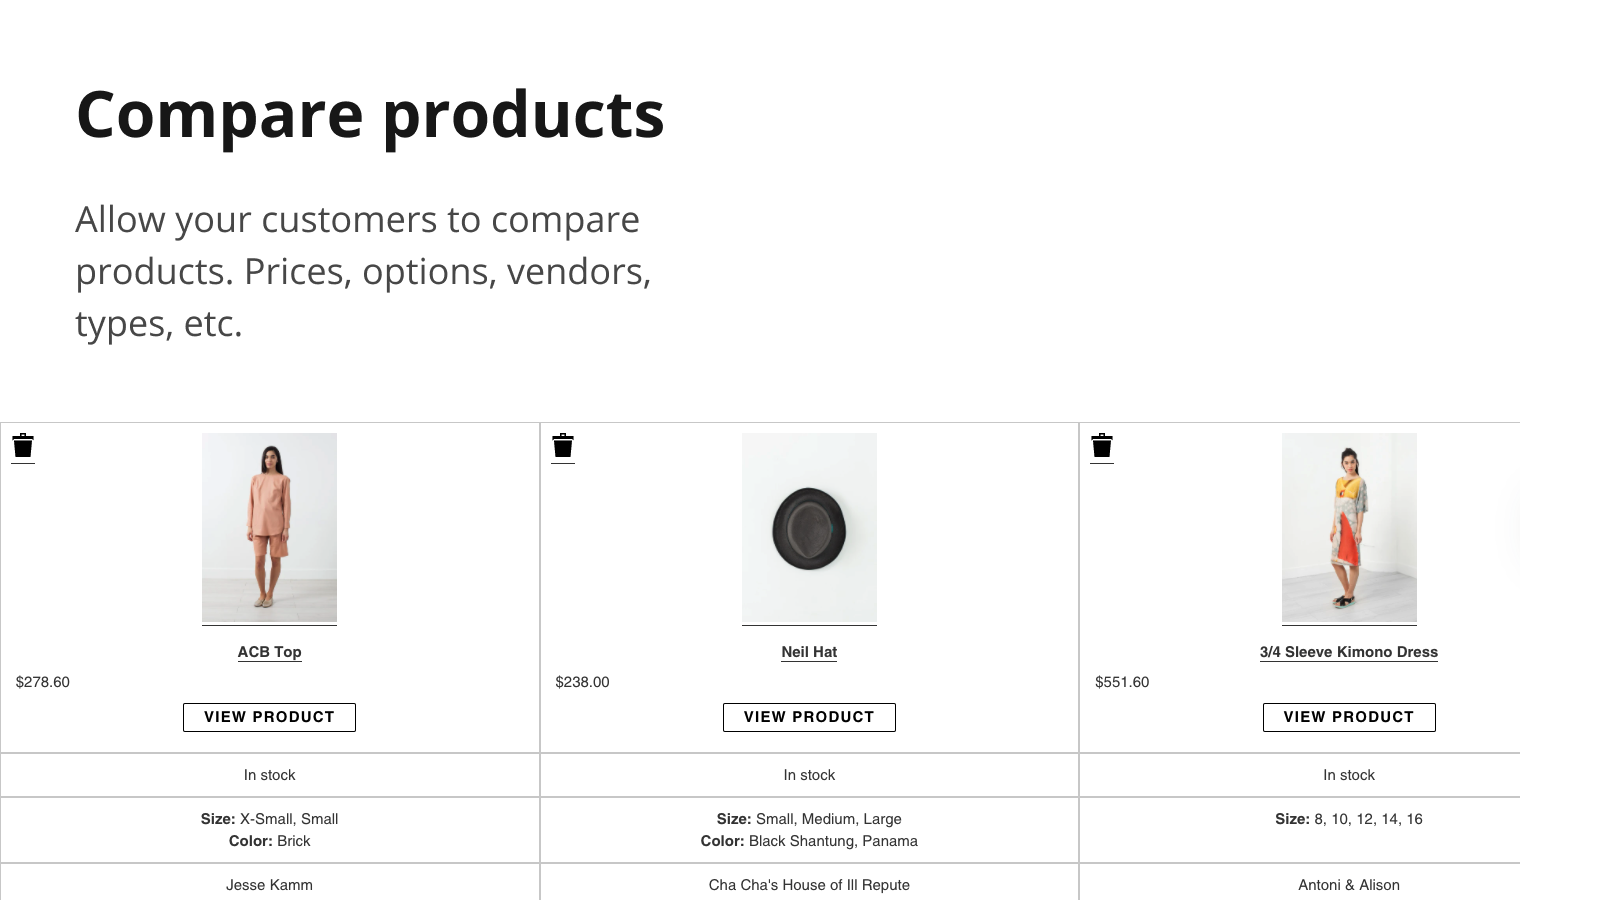 Compare products